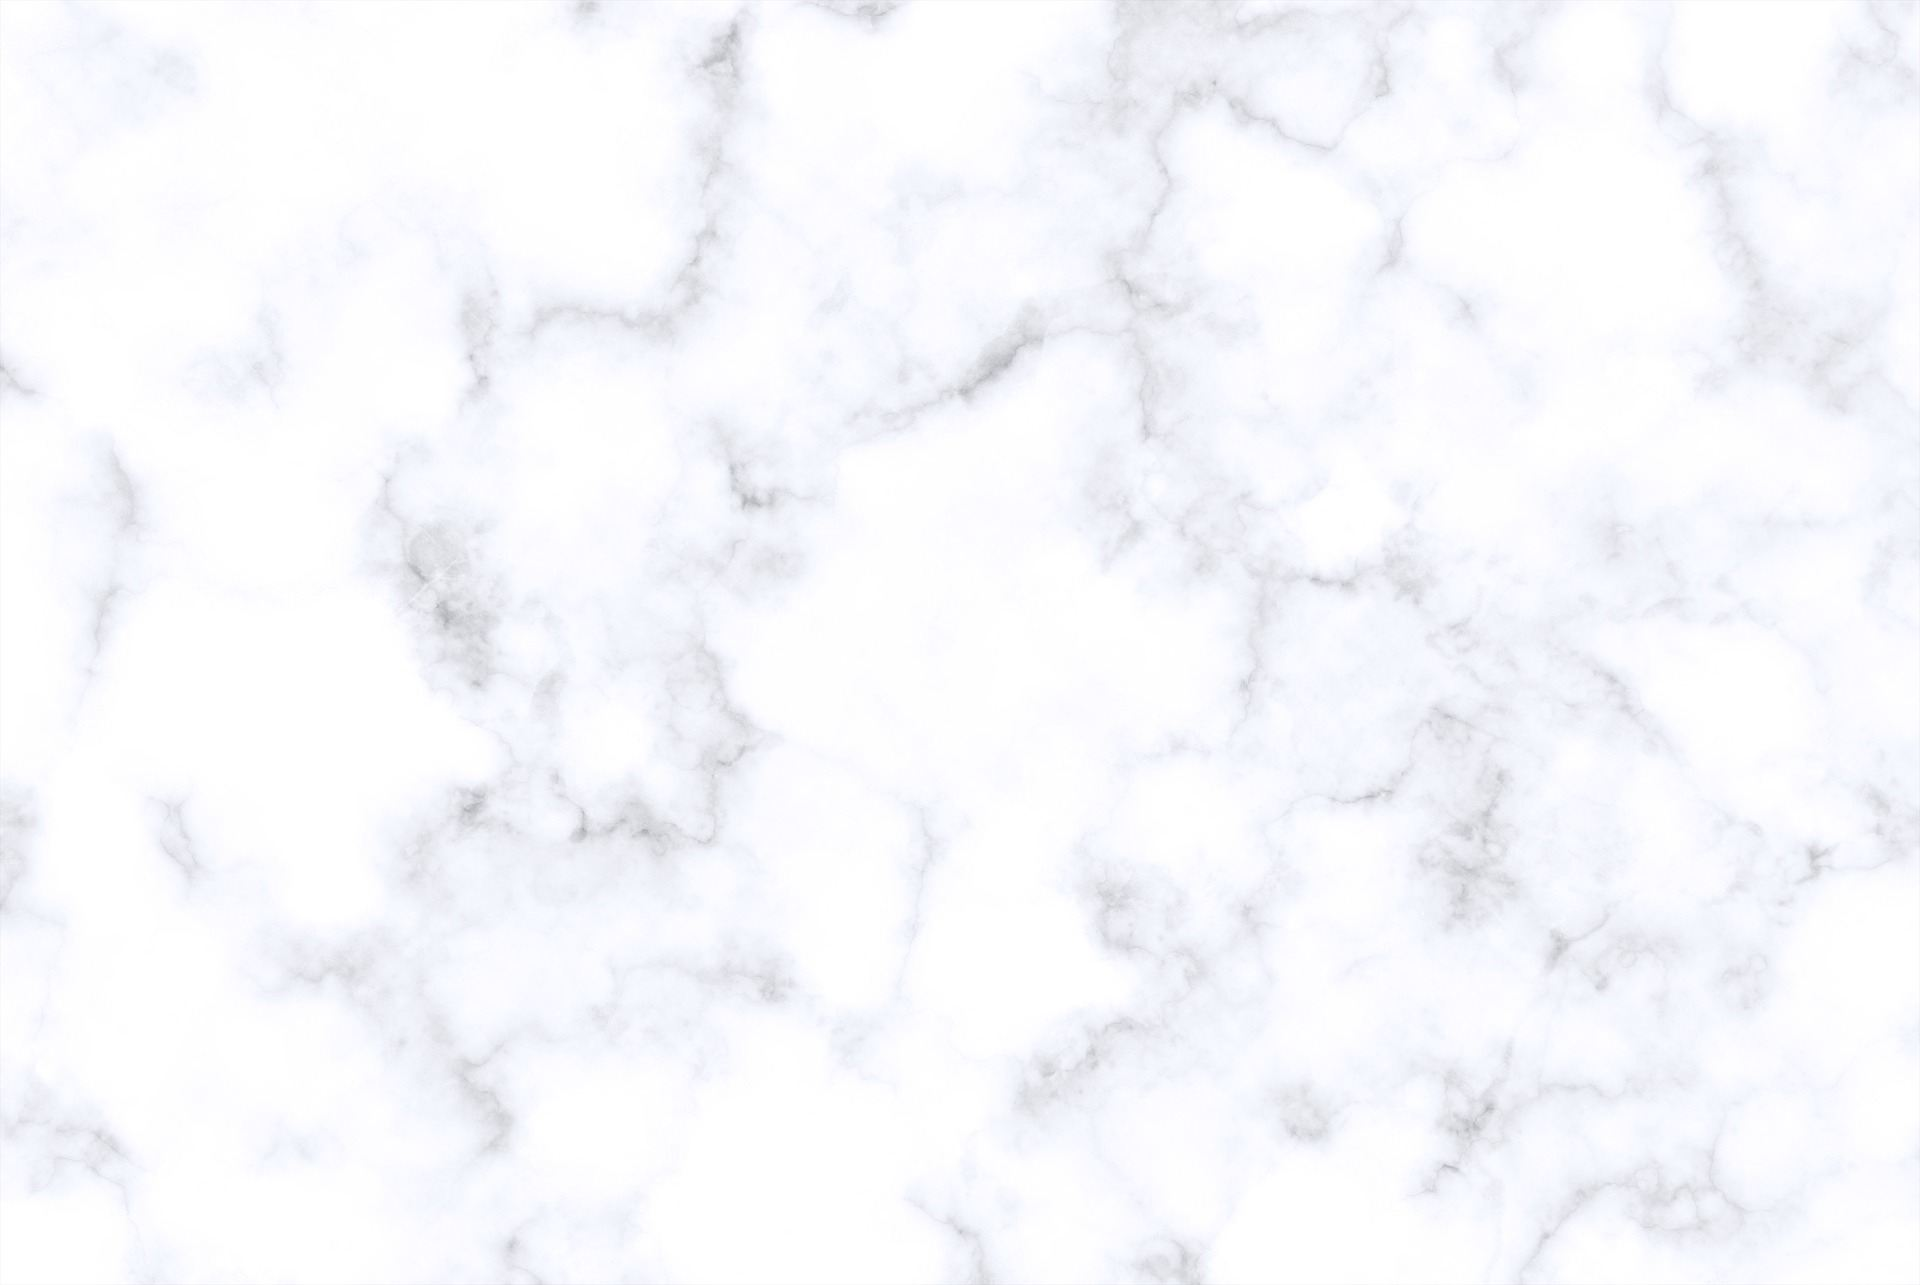 PPG - Background Texture Marble